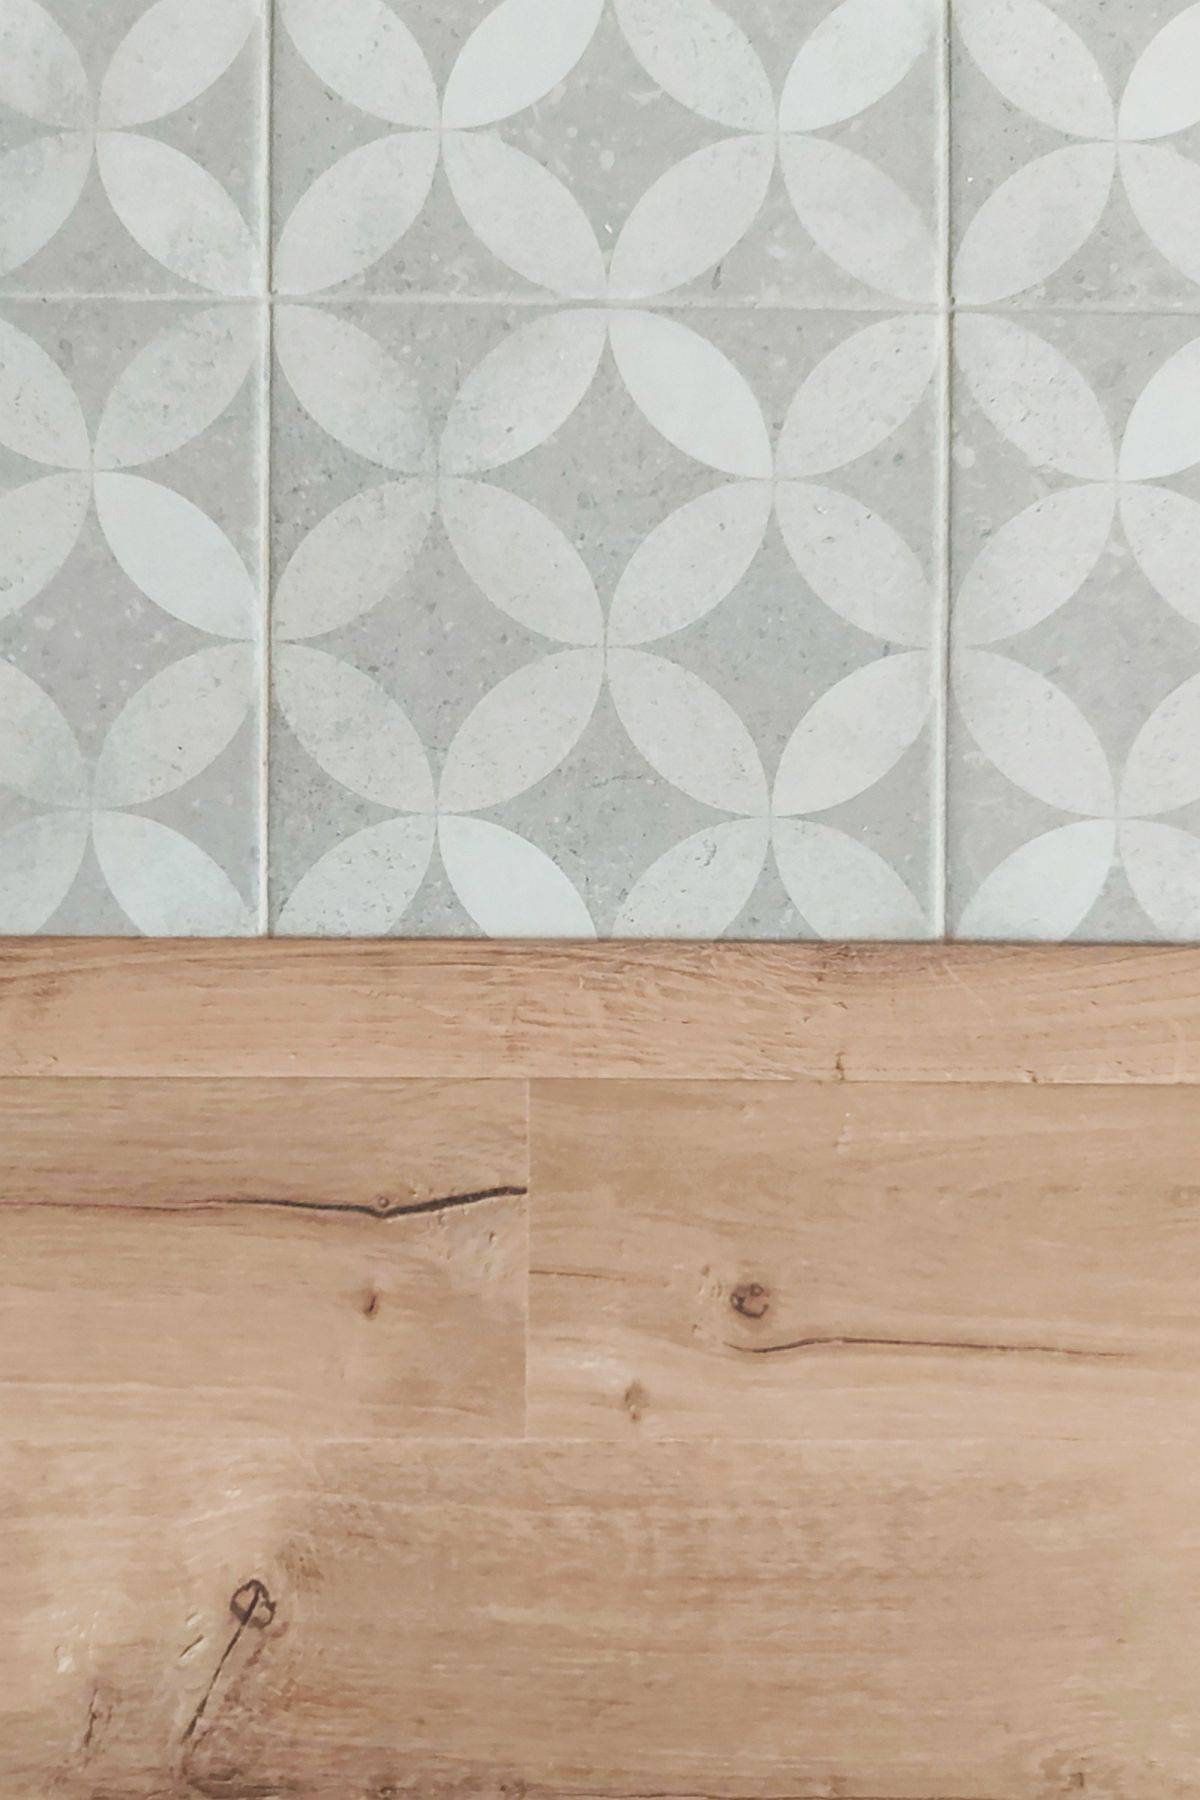 Patterned-tile floor of the kitchen next to the wooden floor of the living room